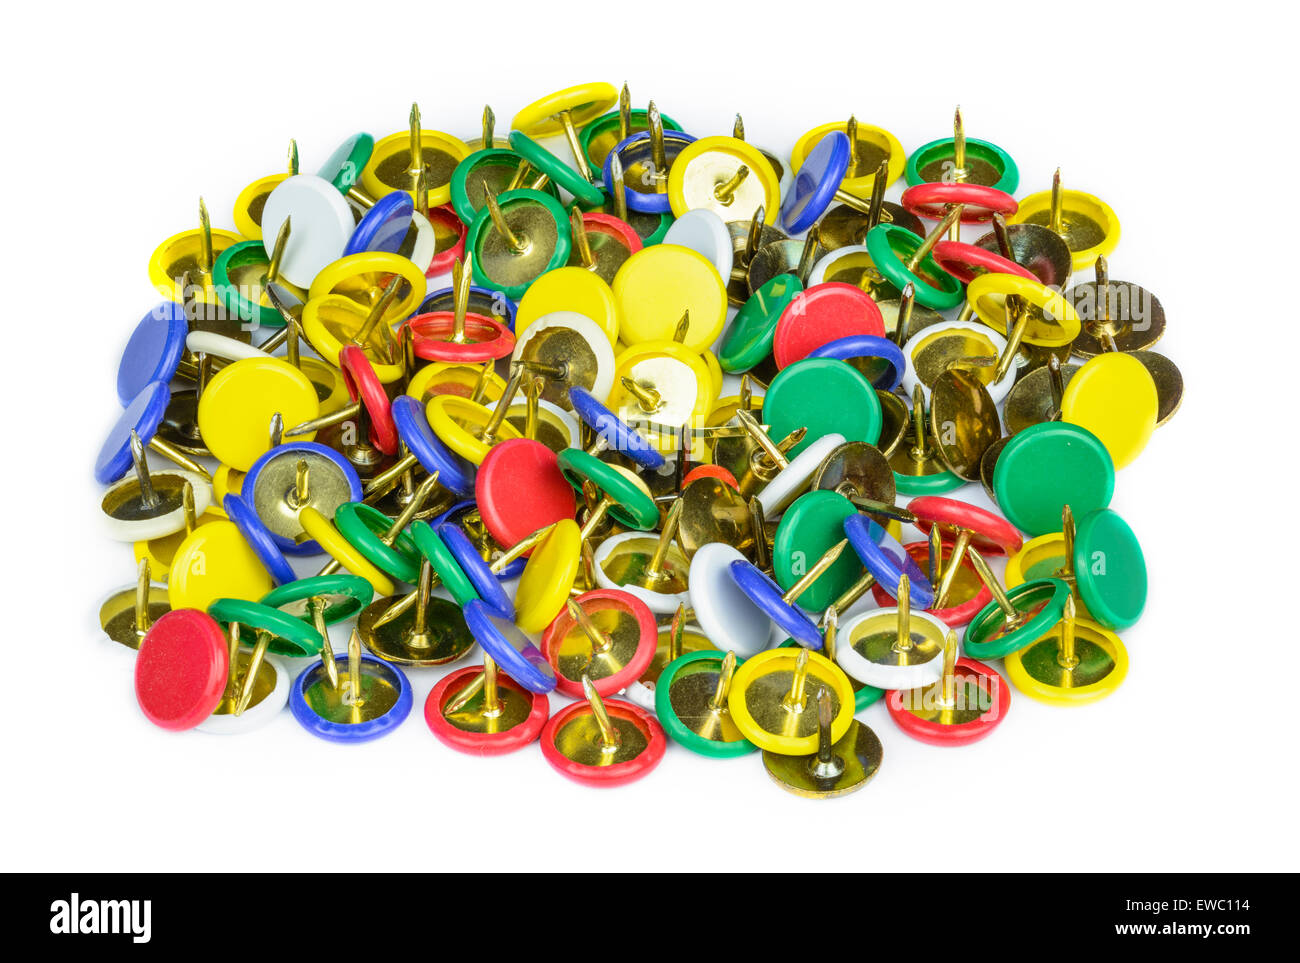 A pile of multicoloured drawing pins (thumb tacks) on a white background. - Stock Image